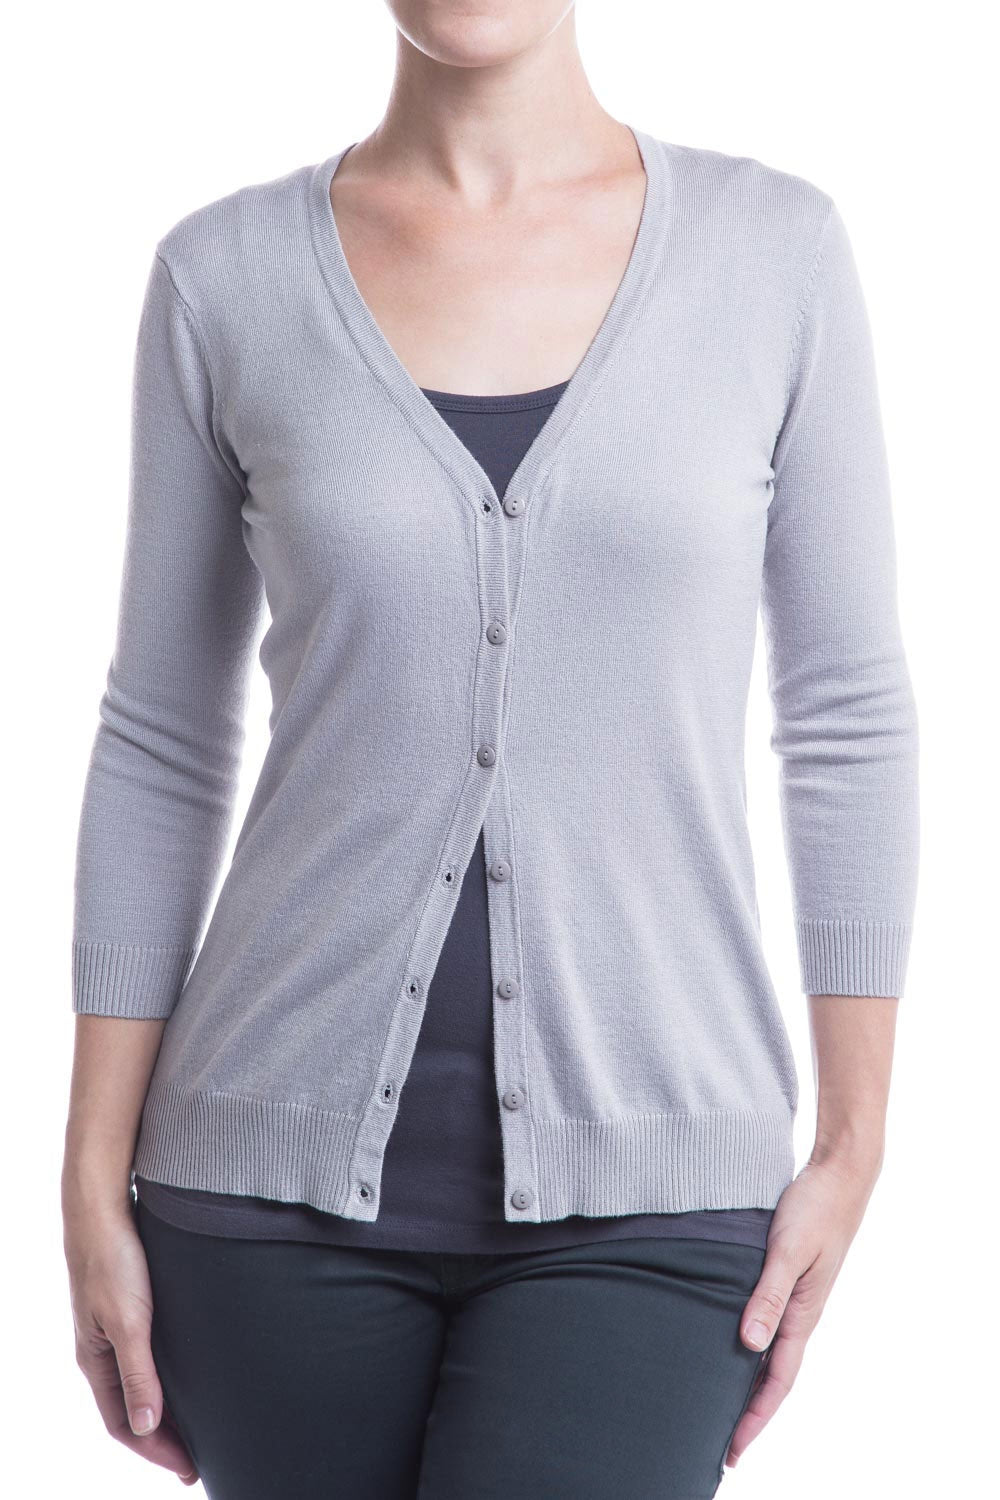 Type 2 Everyday V-neck Cardigan In Gray Dove